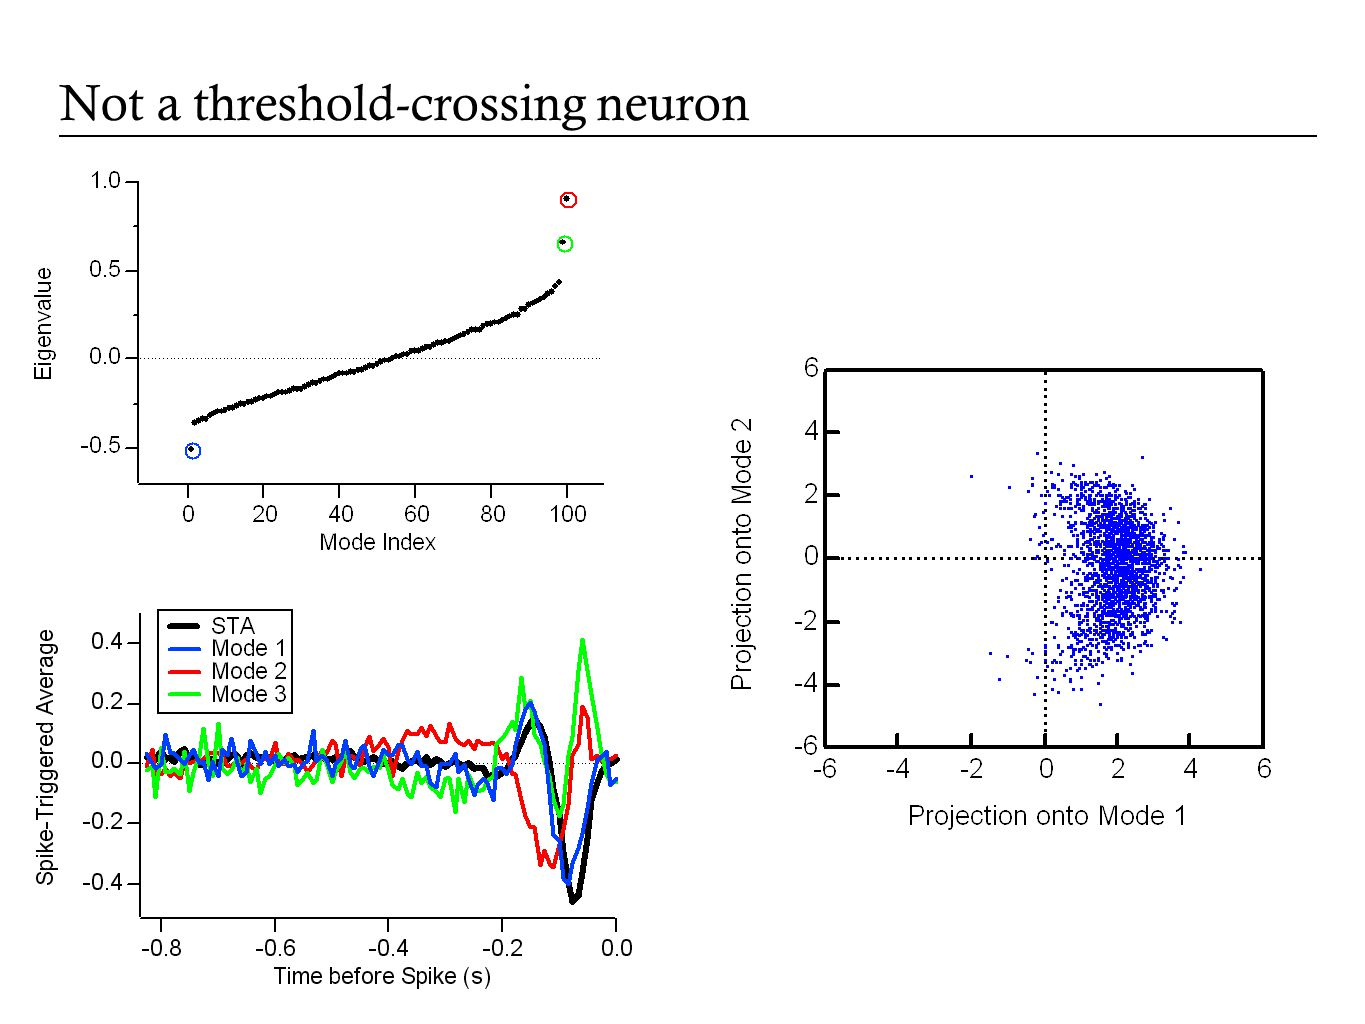 Not a threshold-crossing neuron